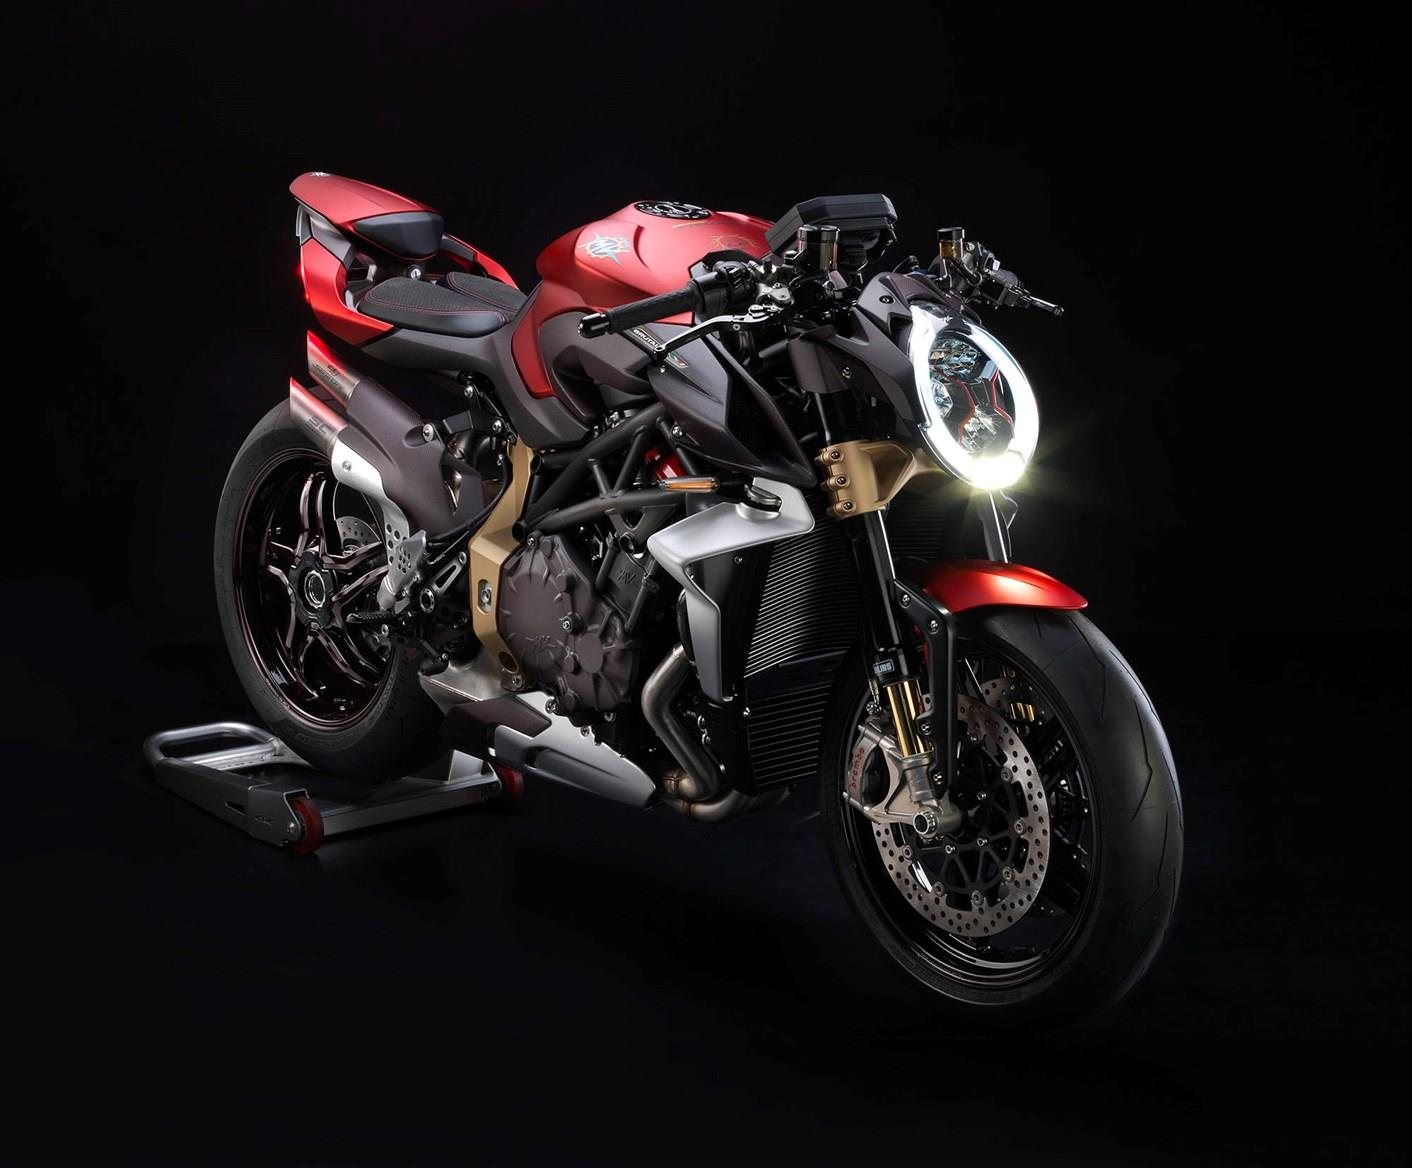 RJ reckons an MV Agusta could find a place in his garage if he could trust a dealer